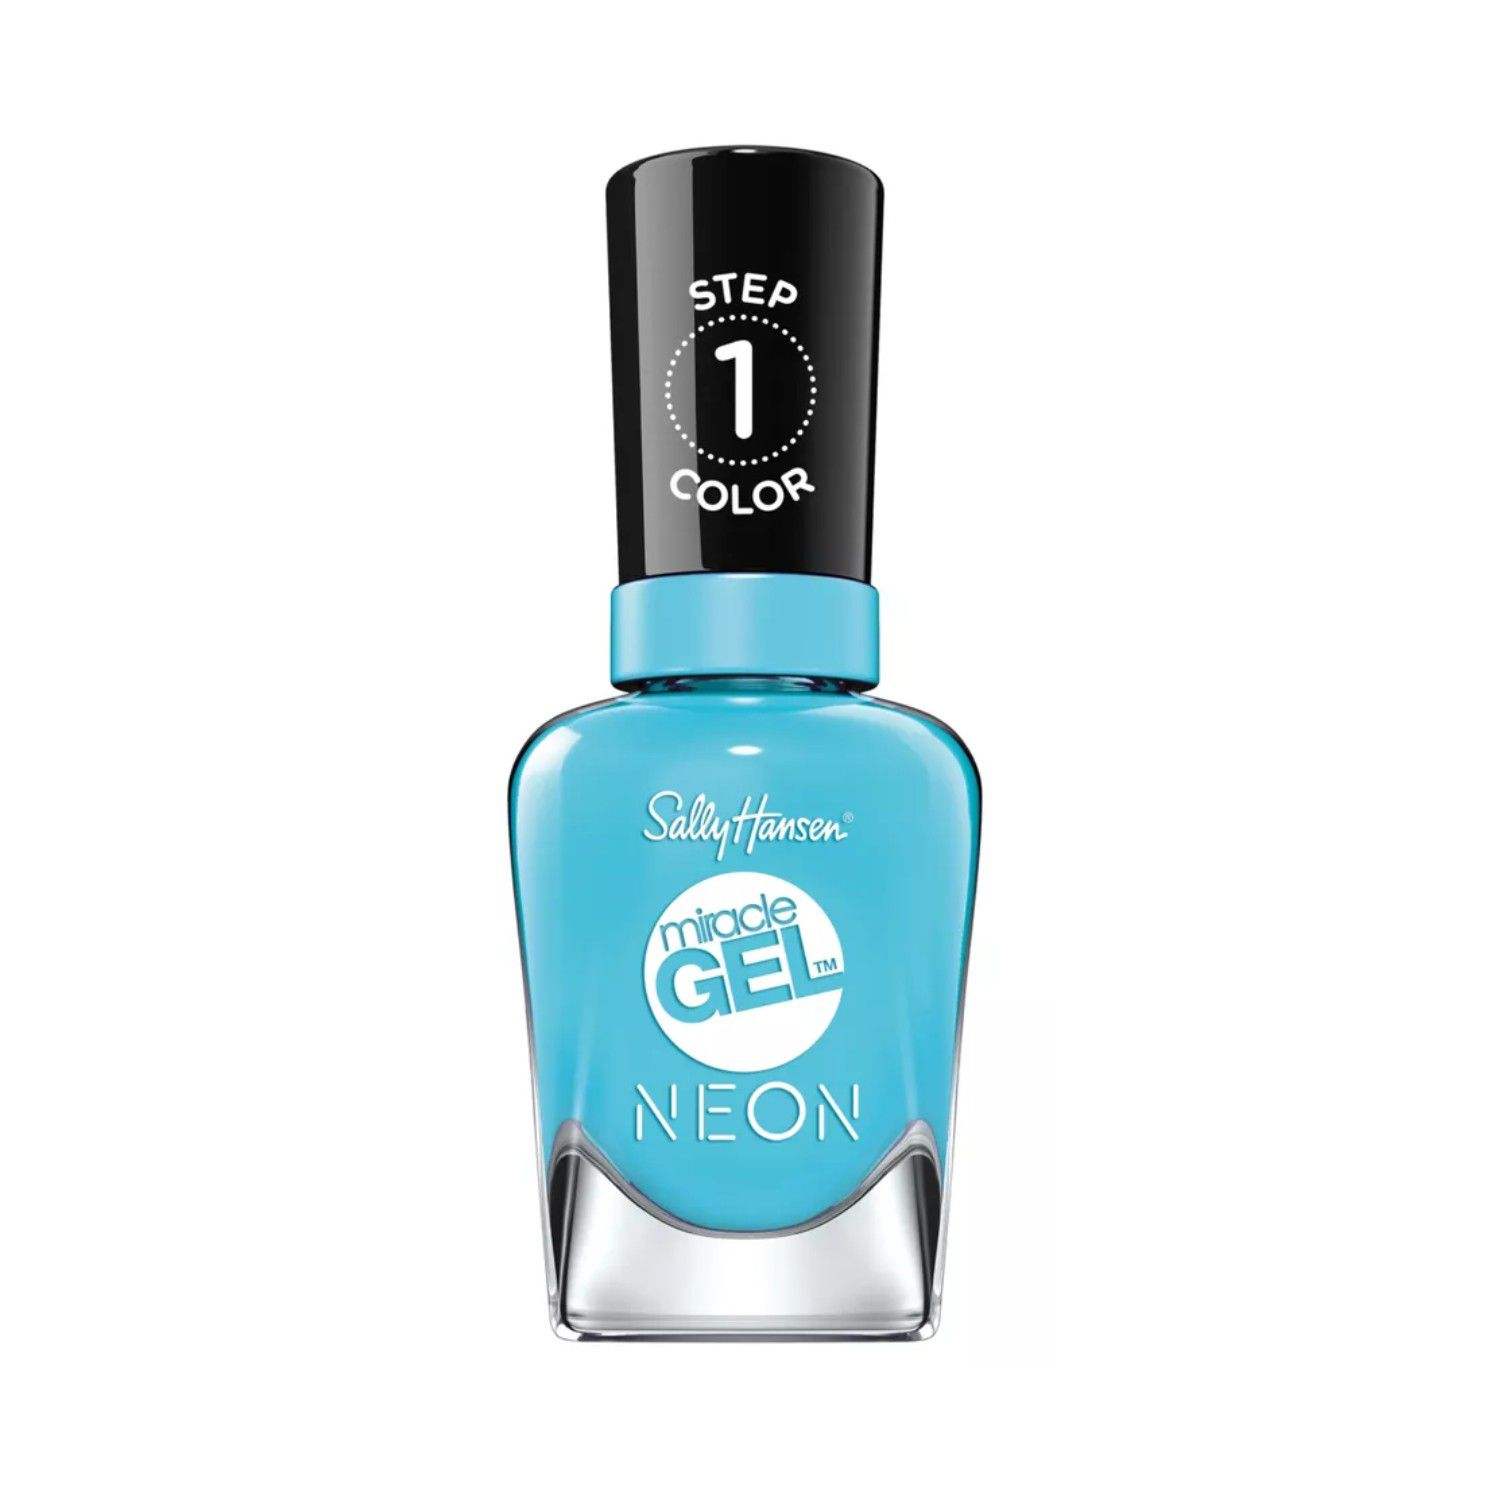 Bottle of neon blue nail polish with a black top.